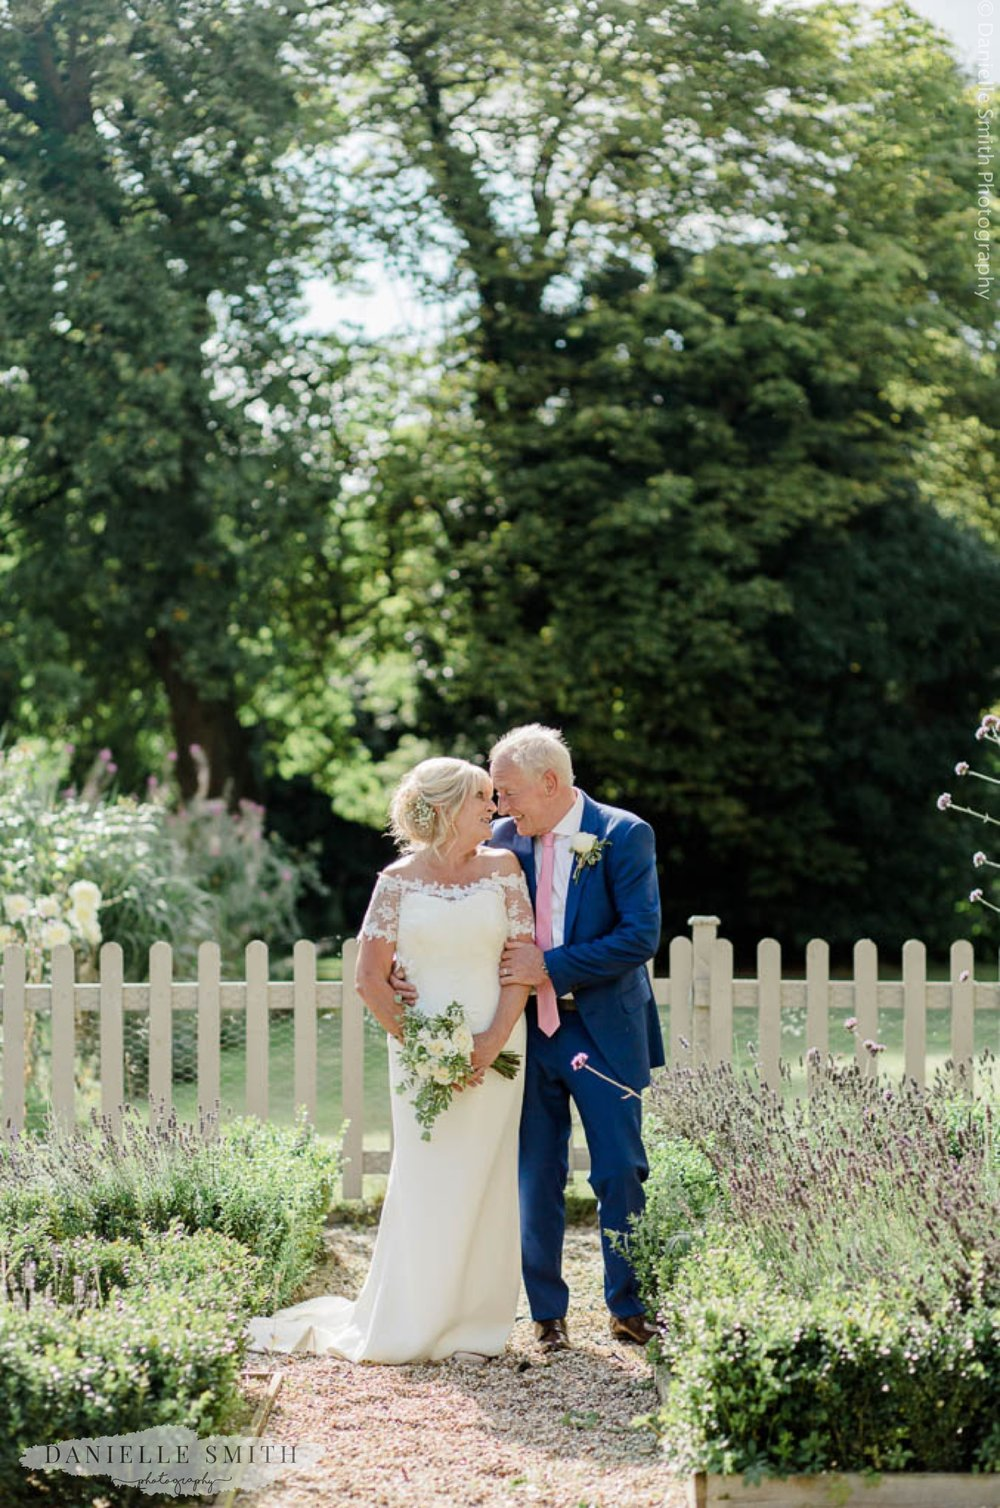 brid and groom looking at each other in gardens